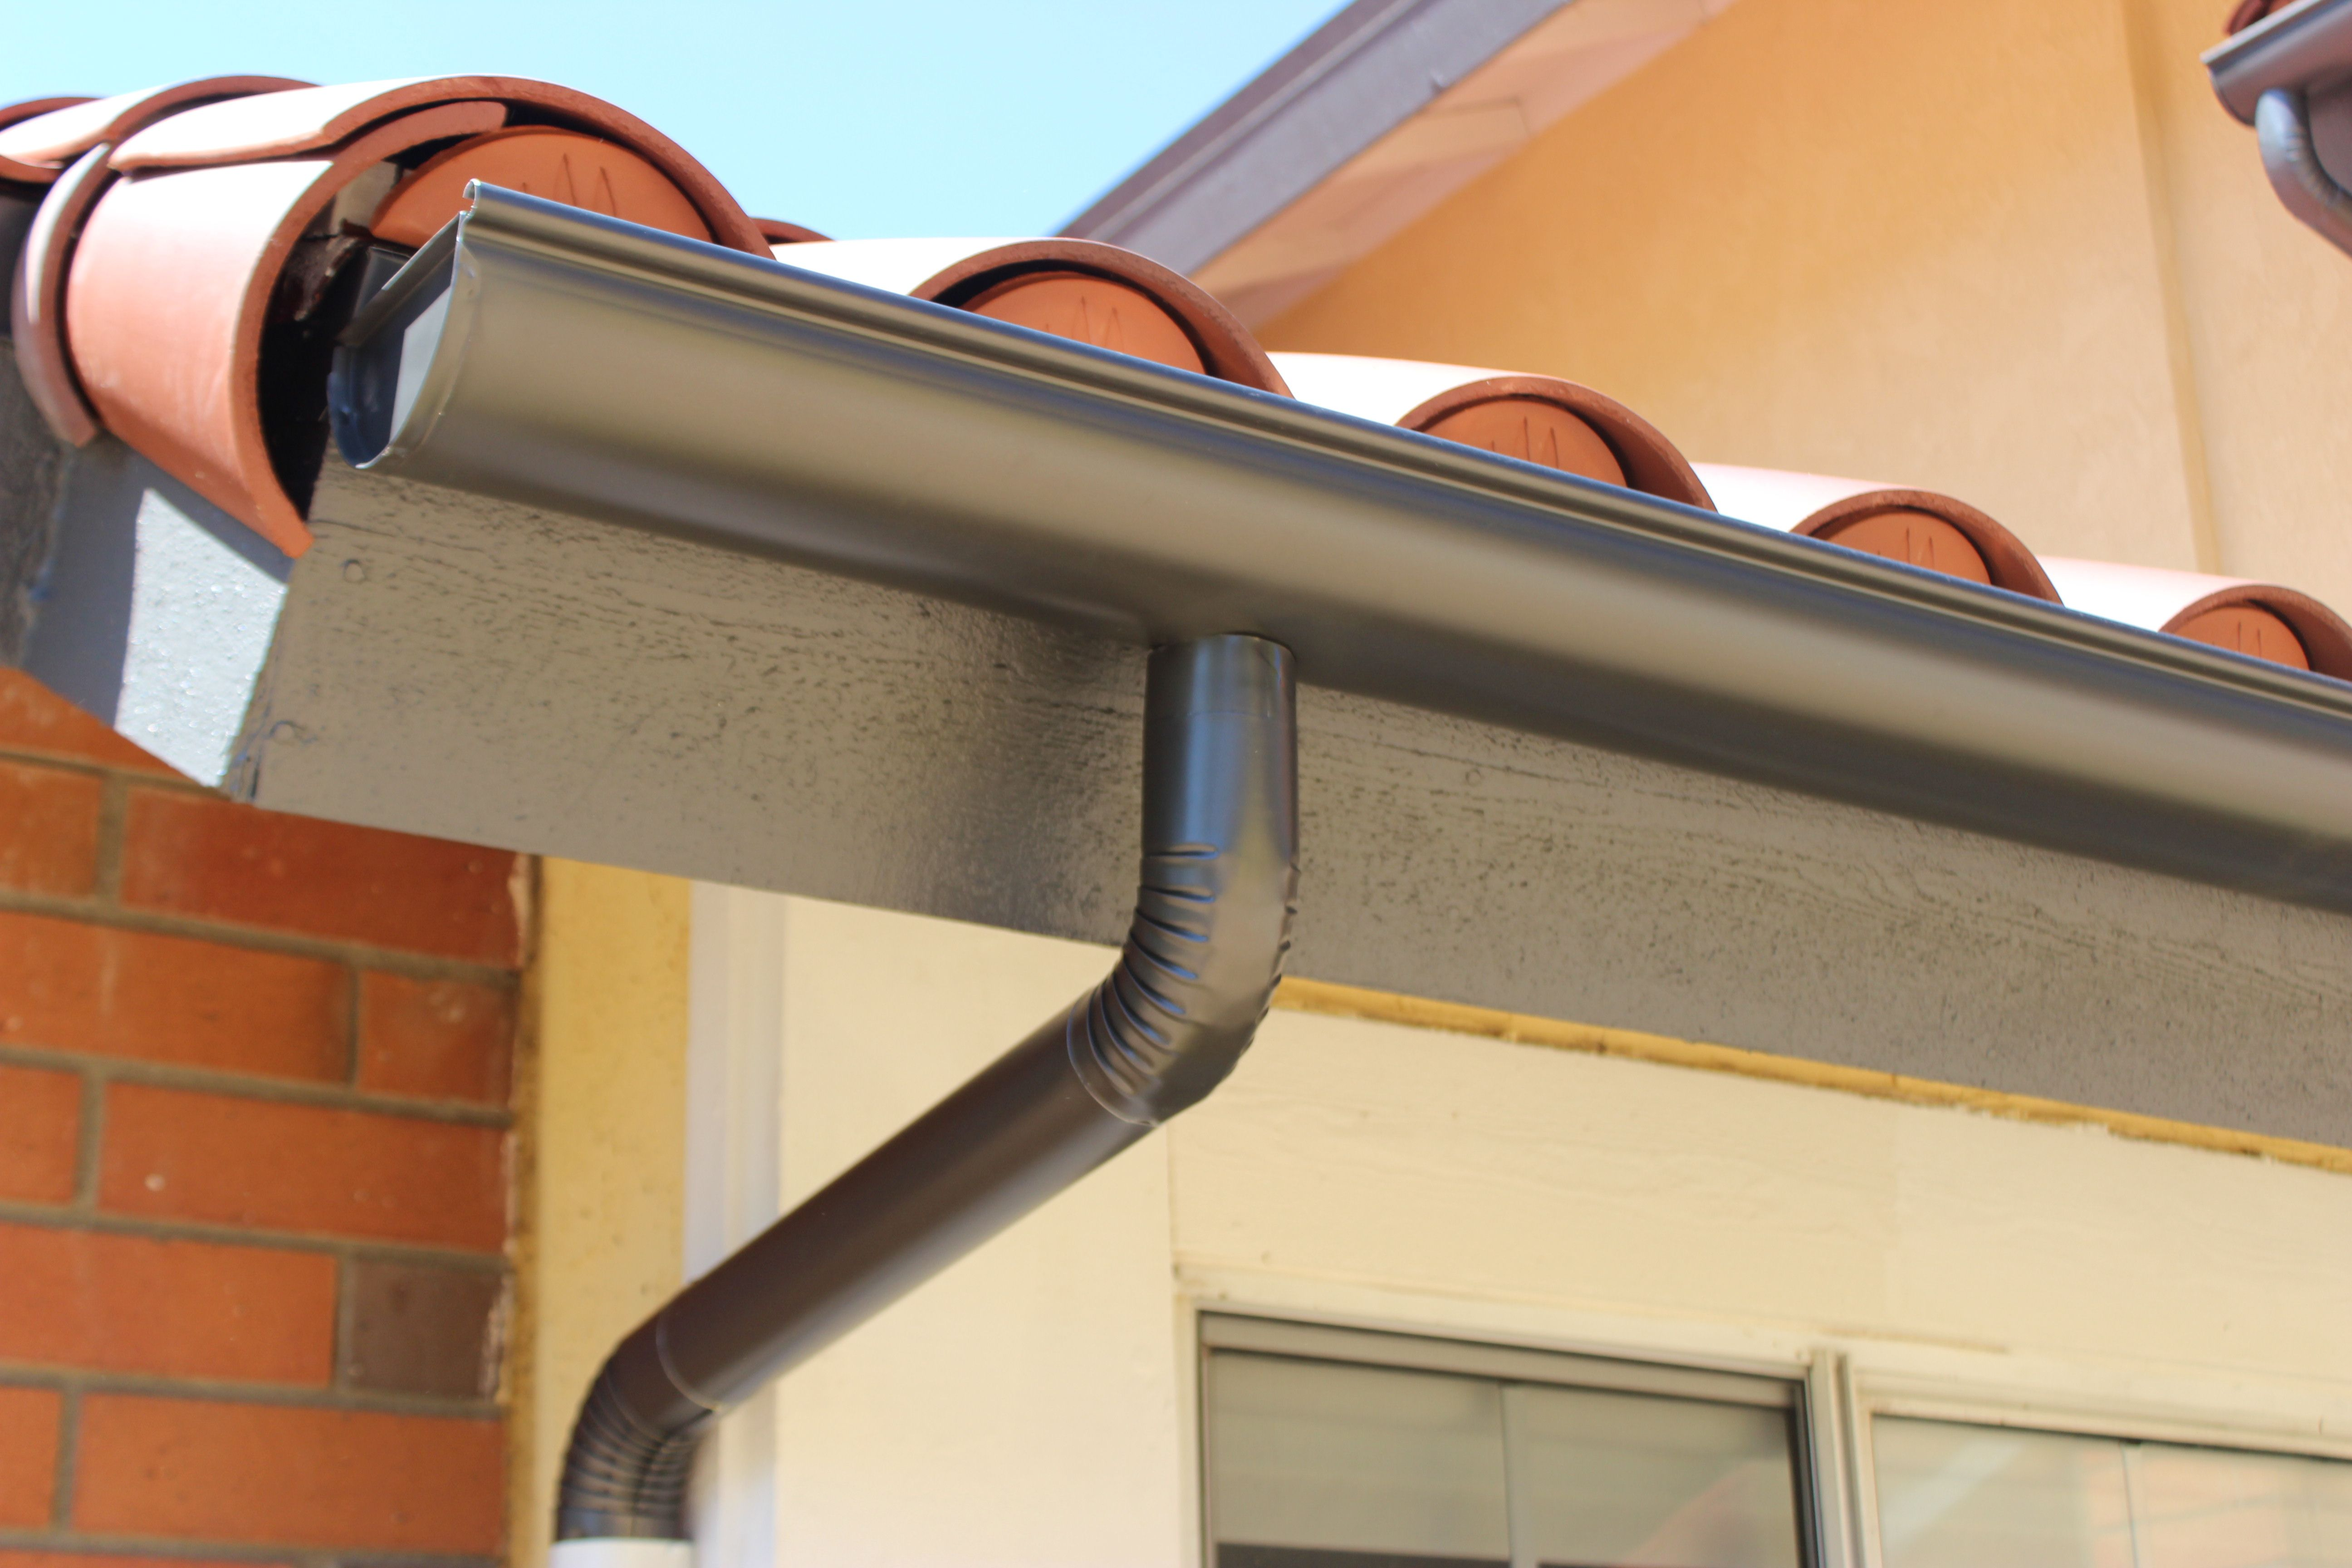 Seamless Aluminum Half Round Rain Gutters With Dual Colored Round Downspouts This Rain Gutter Installation Was Co Gutters Diy Gutters Rain Gutter Installation